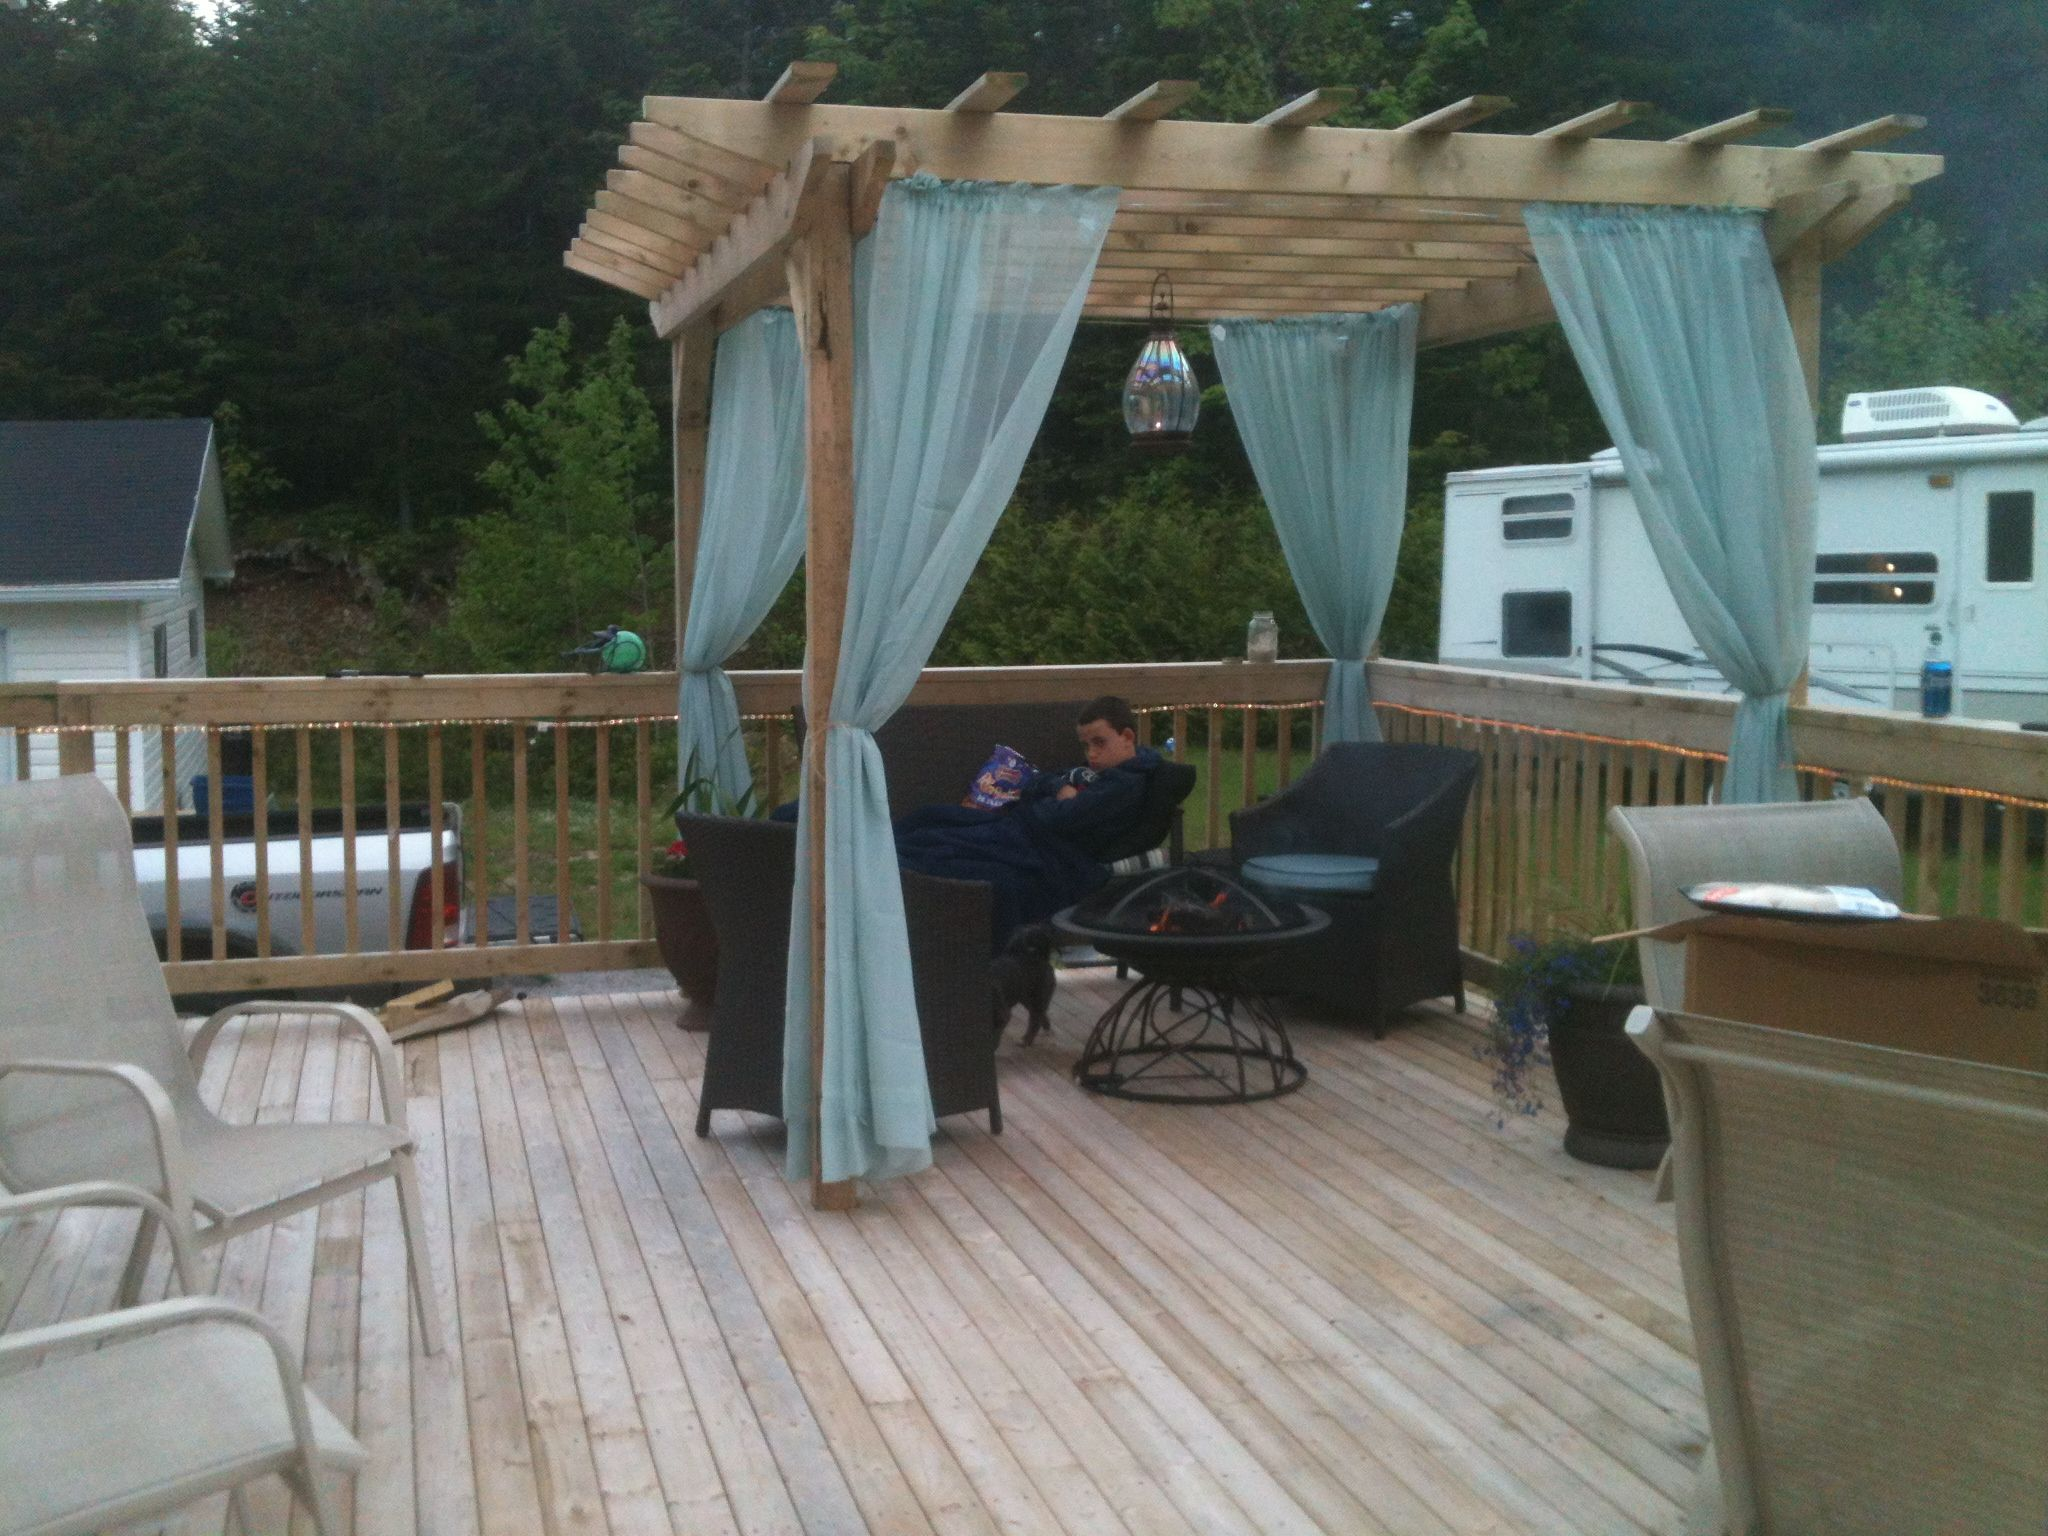 Pergola Curtains For Around The Hot Tub Covered With Plastic Sheet